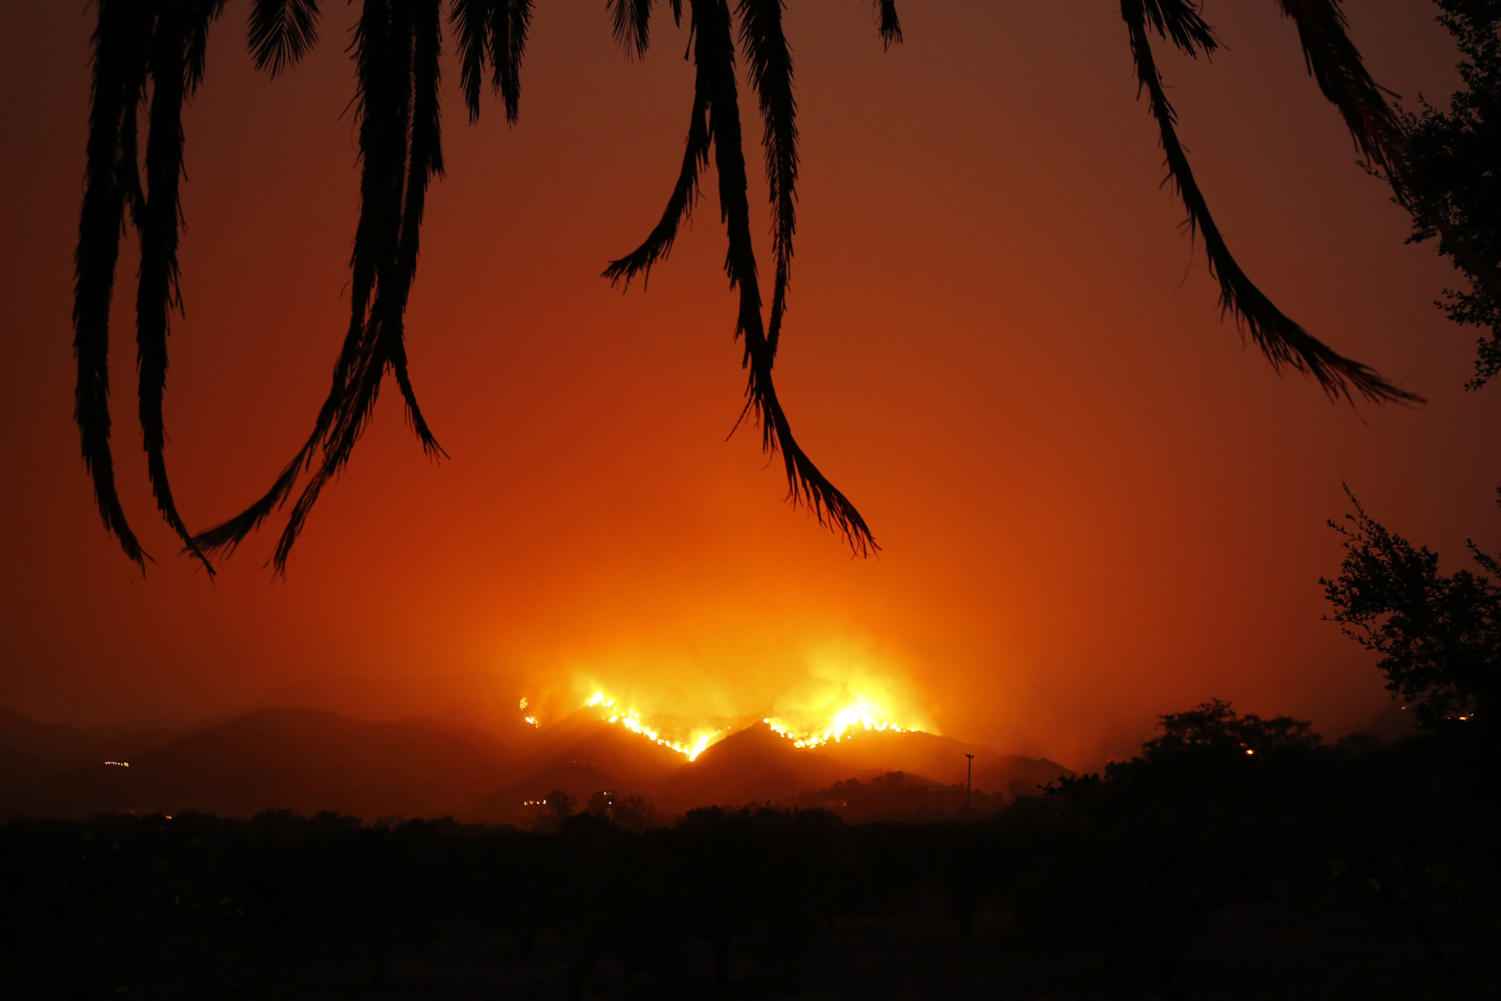 Fire burns back down the hill behind East Valley Road by Ladera Lane near Toro Canyon at dusk on Tuesday, Dec. 12, 2017 in Montecito, Calif. The Thomas fire continues to burn in the upper reaches of Ventura County and in the mountains behind Carpinteria and Montecito in Santa Barbara County with fairly calm winds. (Al Seib/Los Angeles Times/TNS)